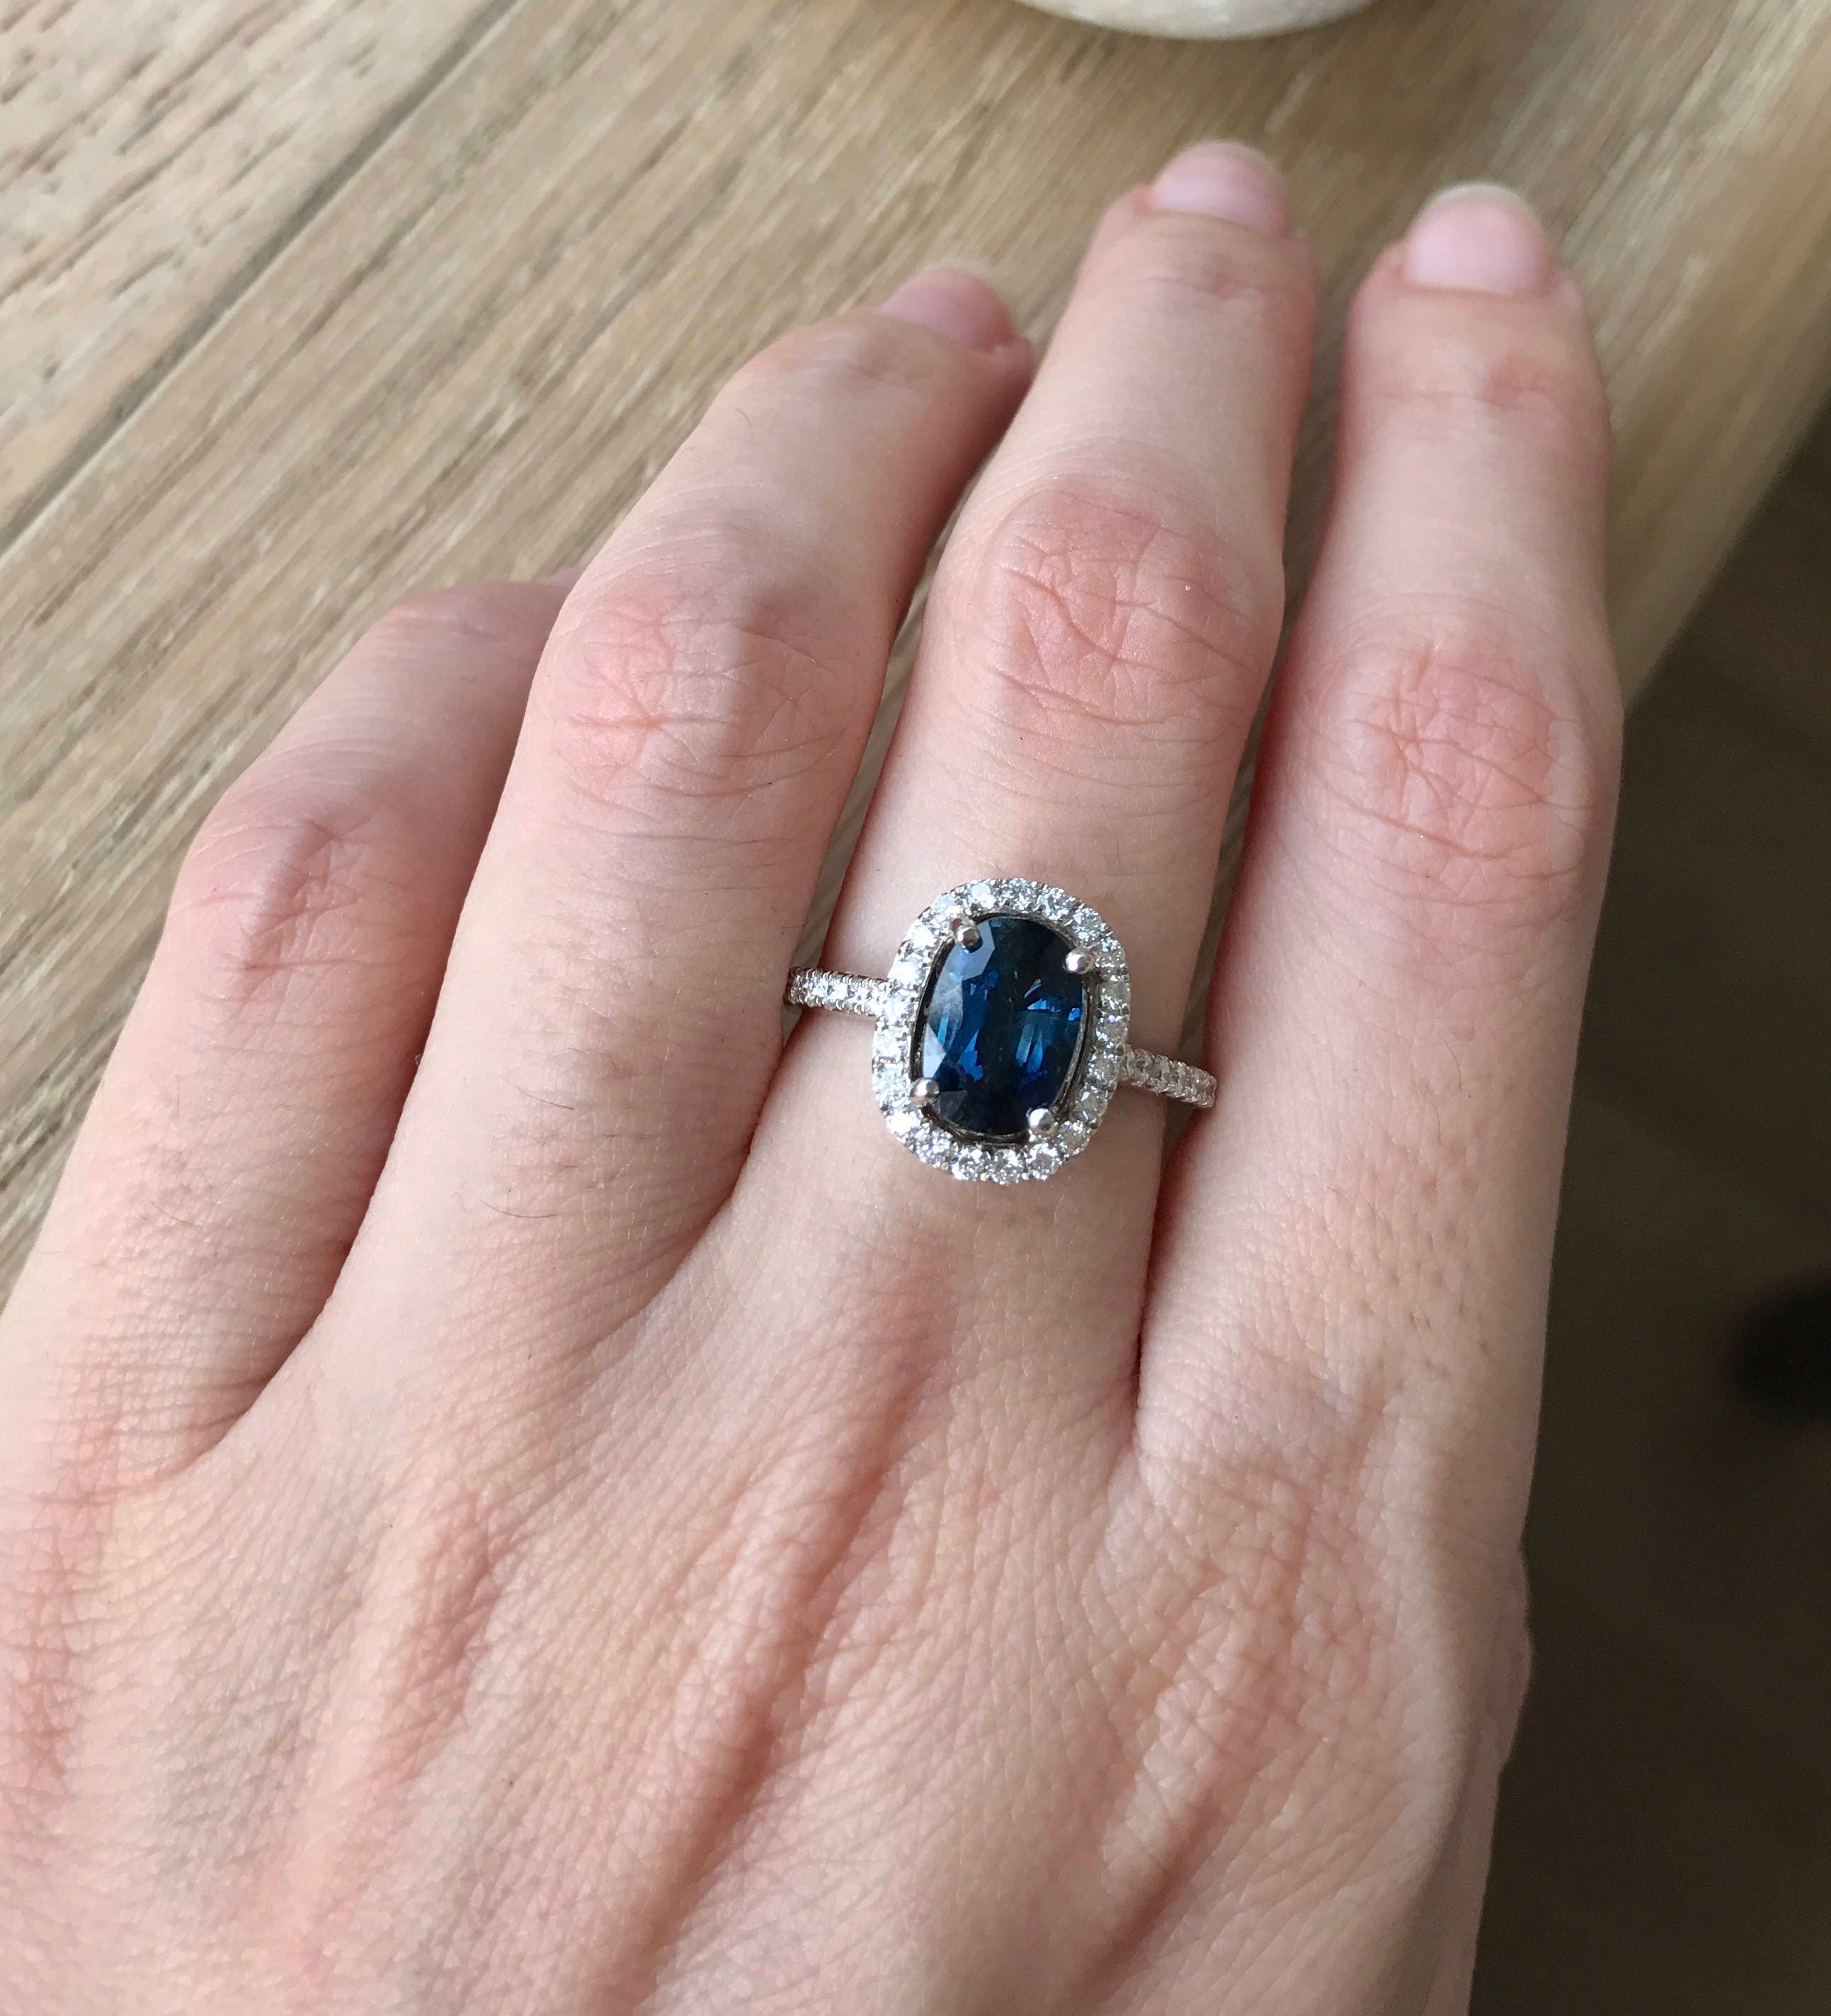 carat made in natural victorian engagement ring sapphire vintage blue cut with single rings centered an pin gold accented approximately and weighing yellow diamonds